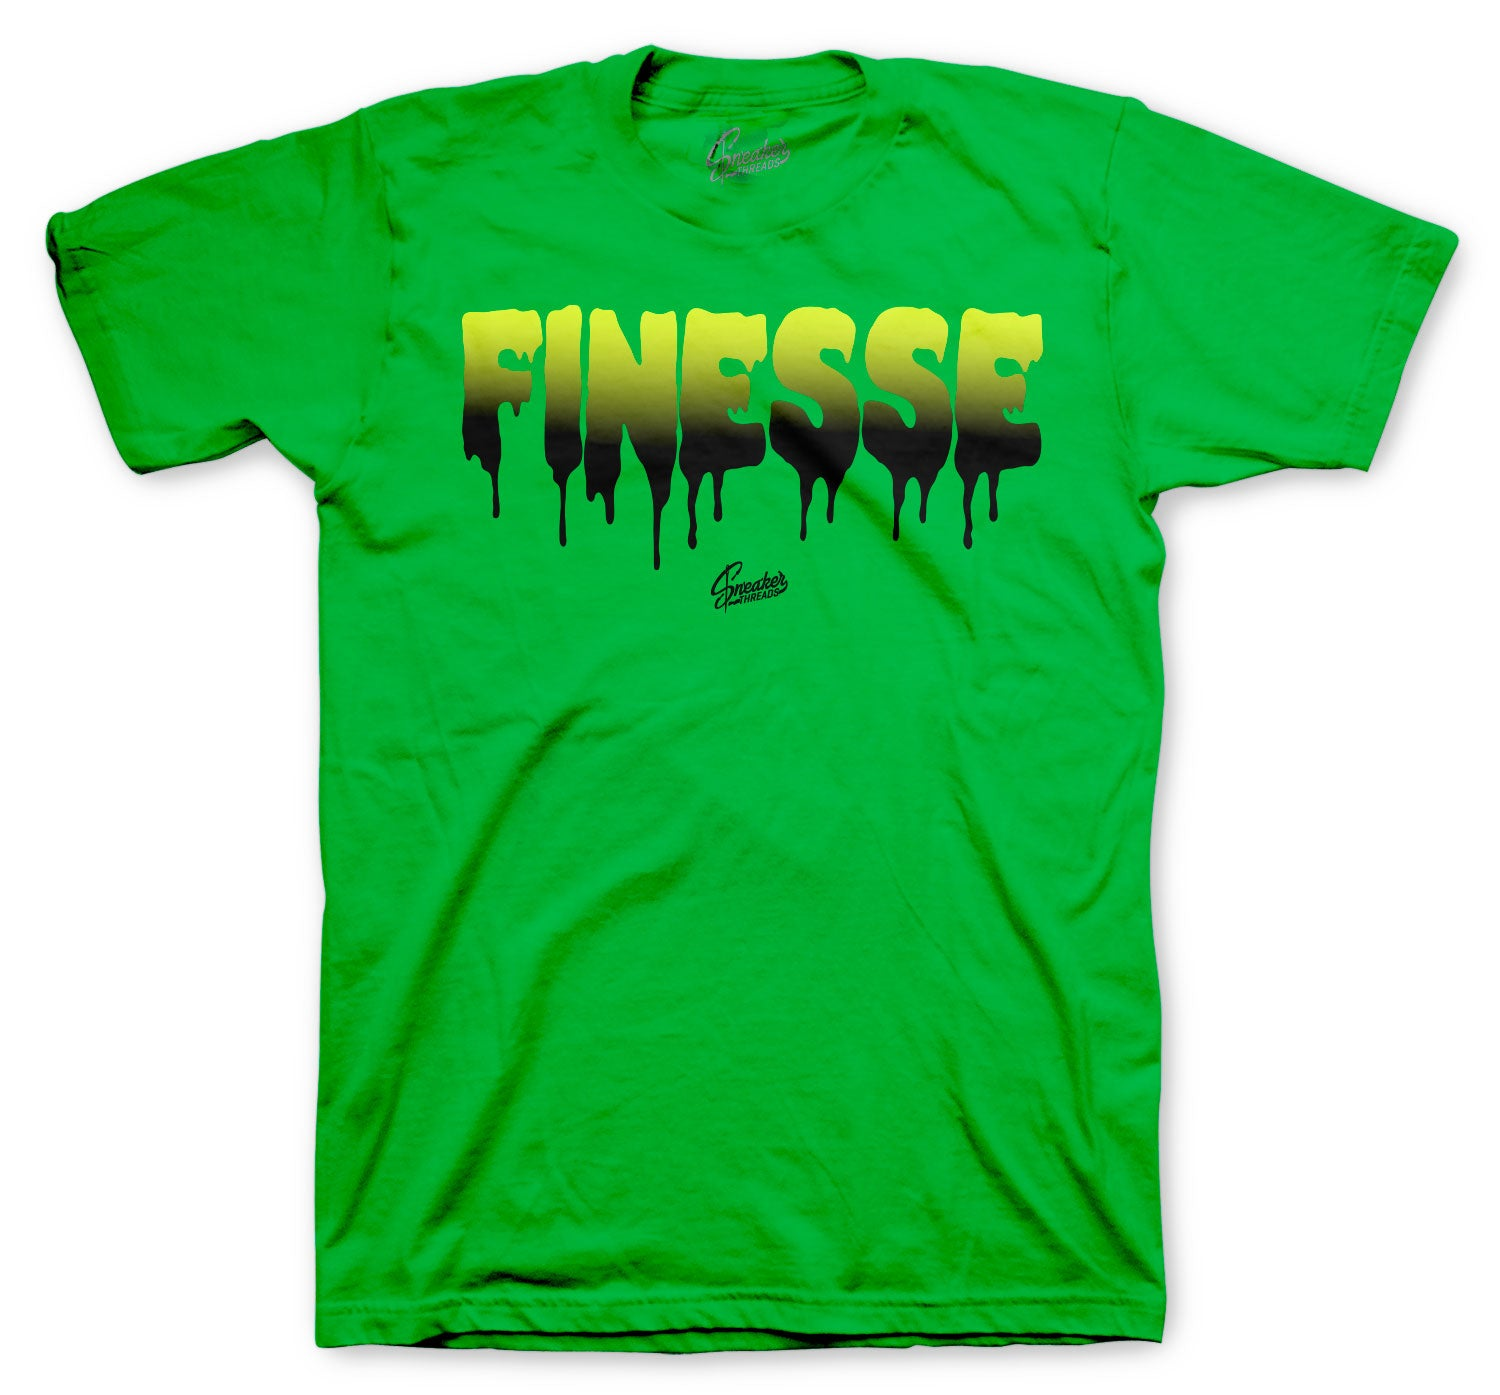 Mens t shirts to match grinch 6 sneakers